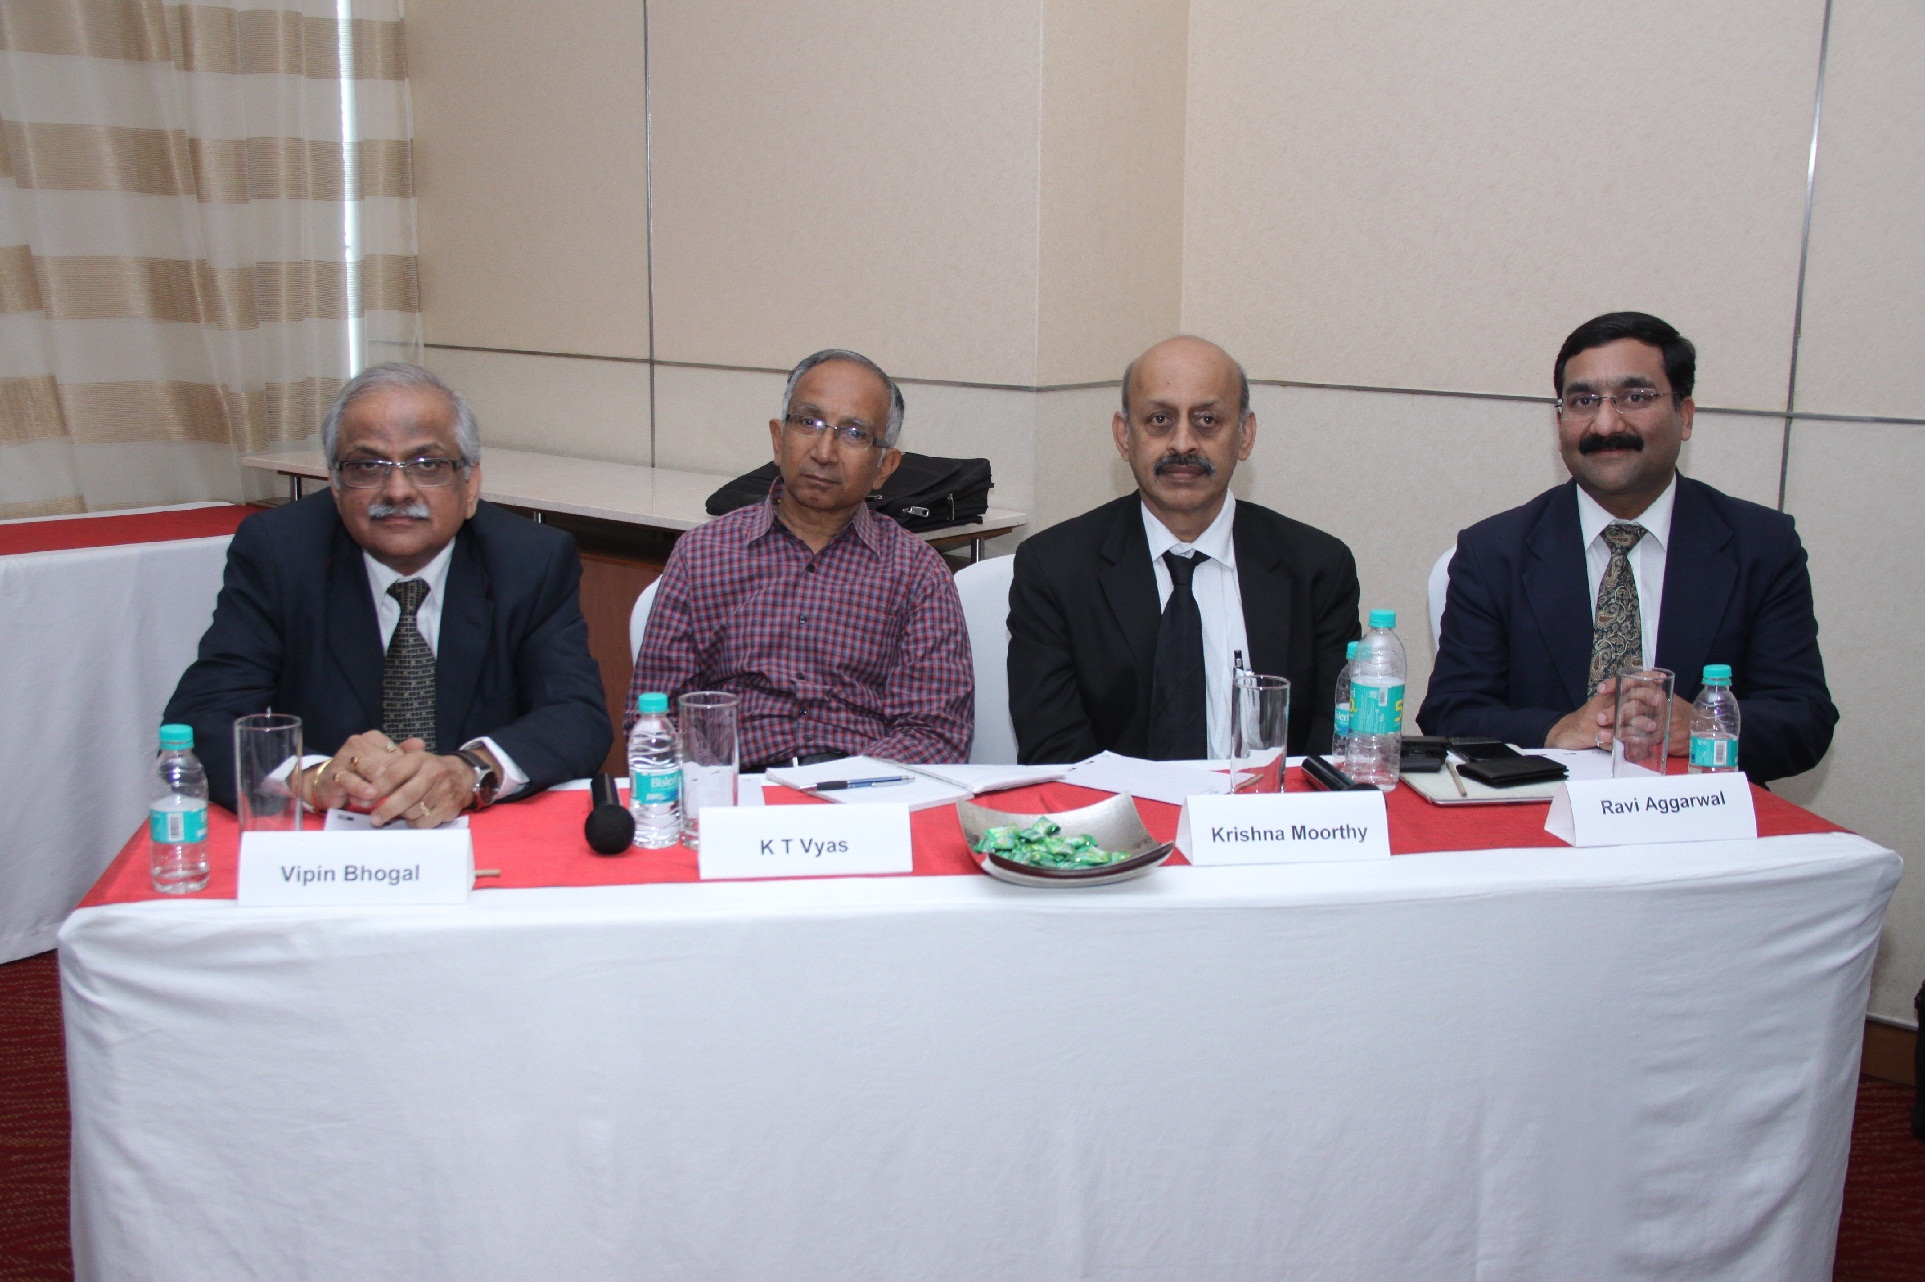 Speaker panel (L-R) Vipin Bhogal  Consultant  Steibeis;K.T. Vyas  Indus...